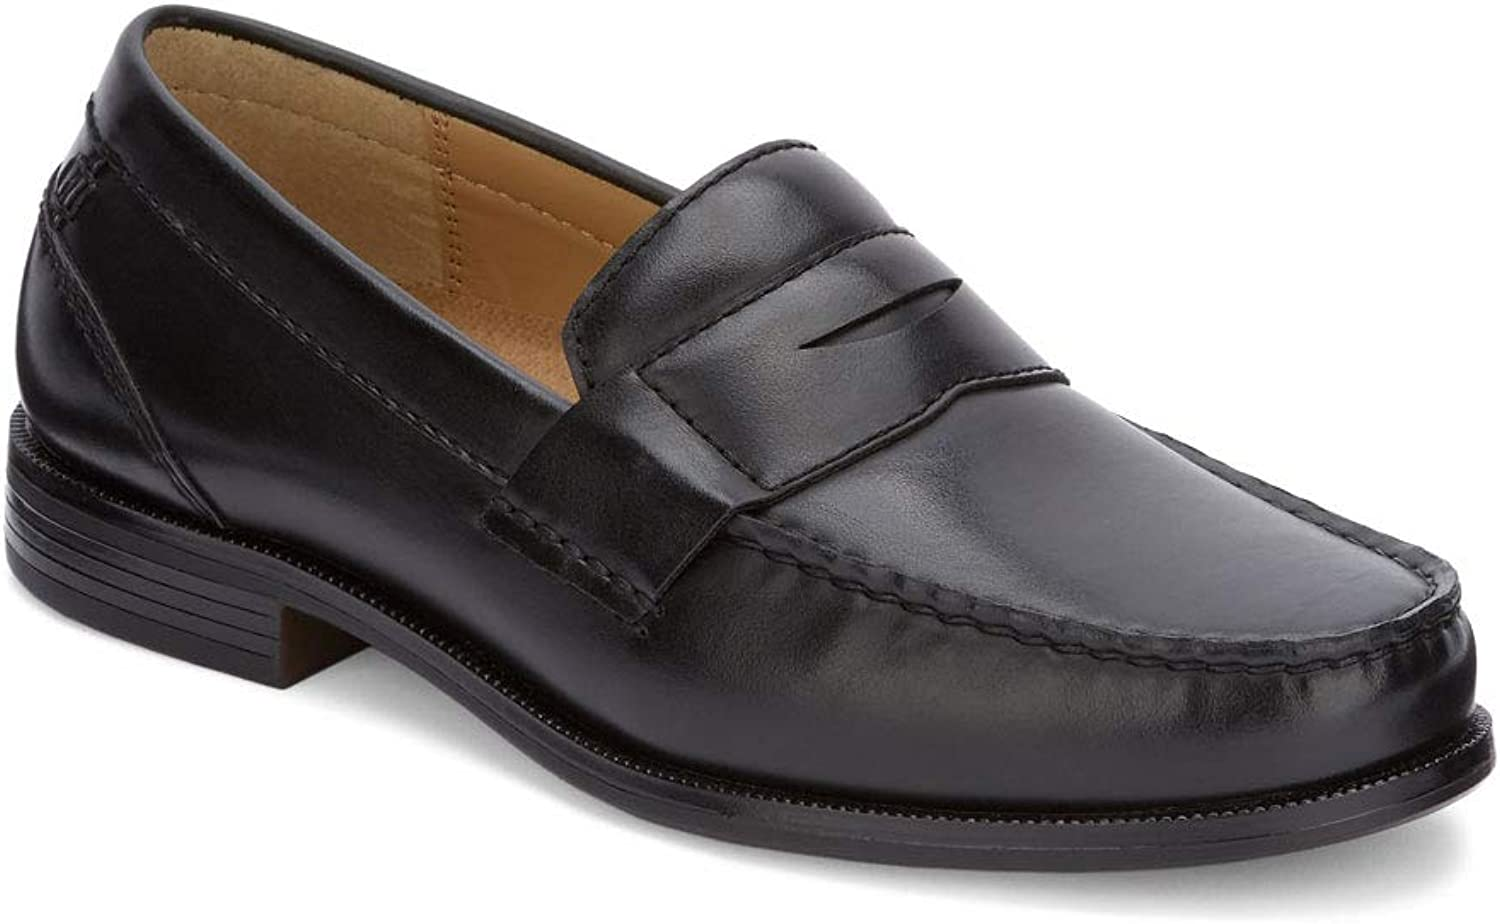 Dockers Mens Colleague Dress Penny Loafer shoes